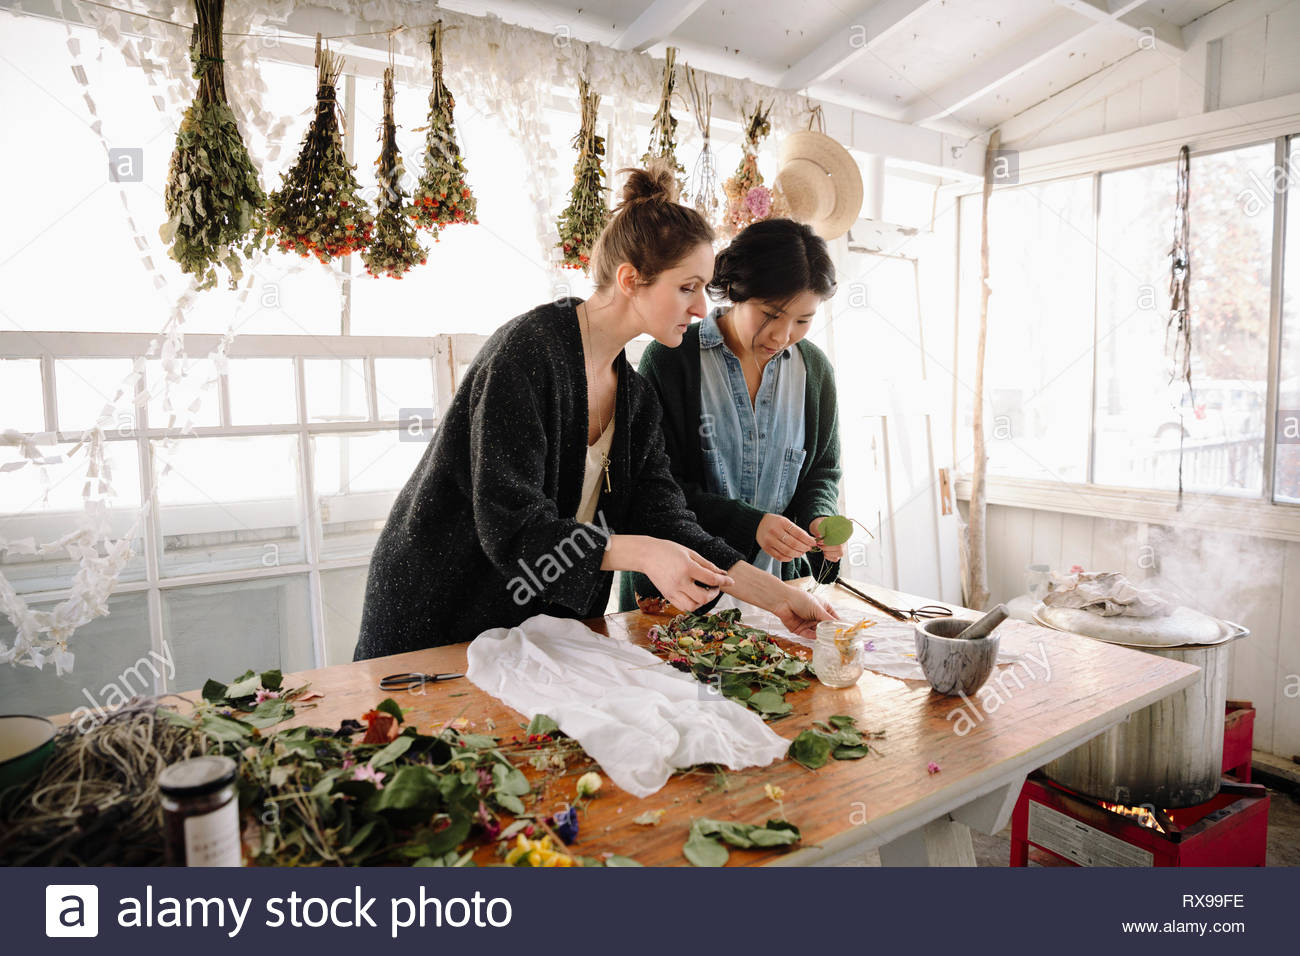 Women drying flowers for paper making in studio - Stock Image